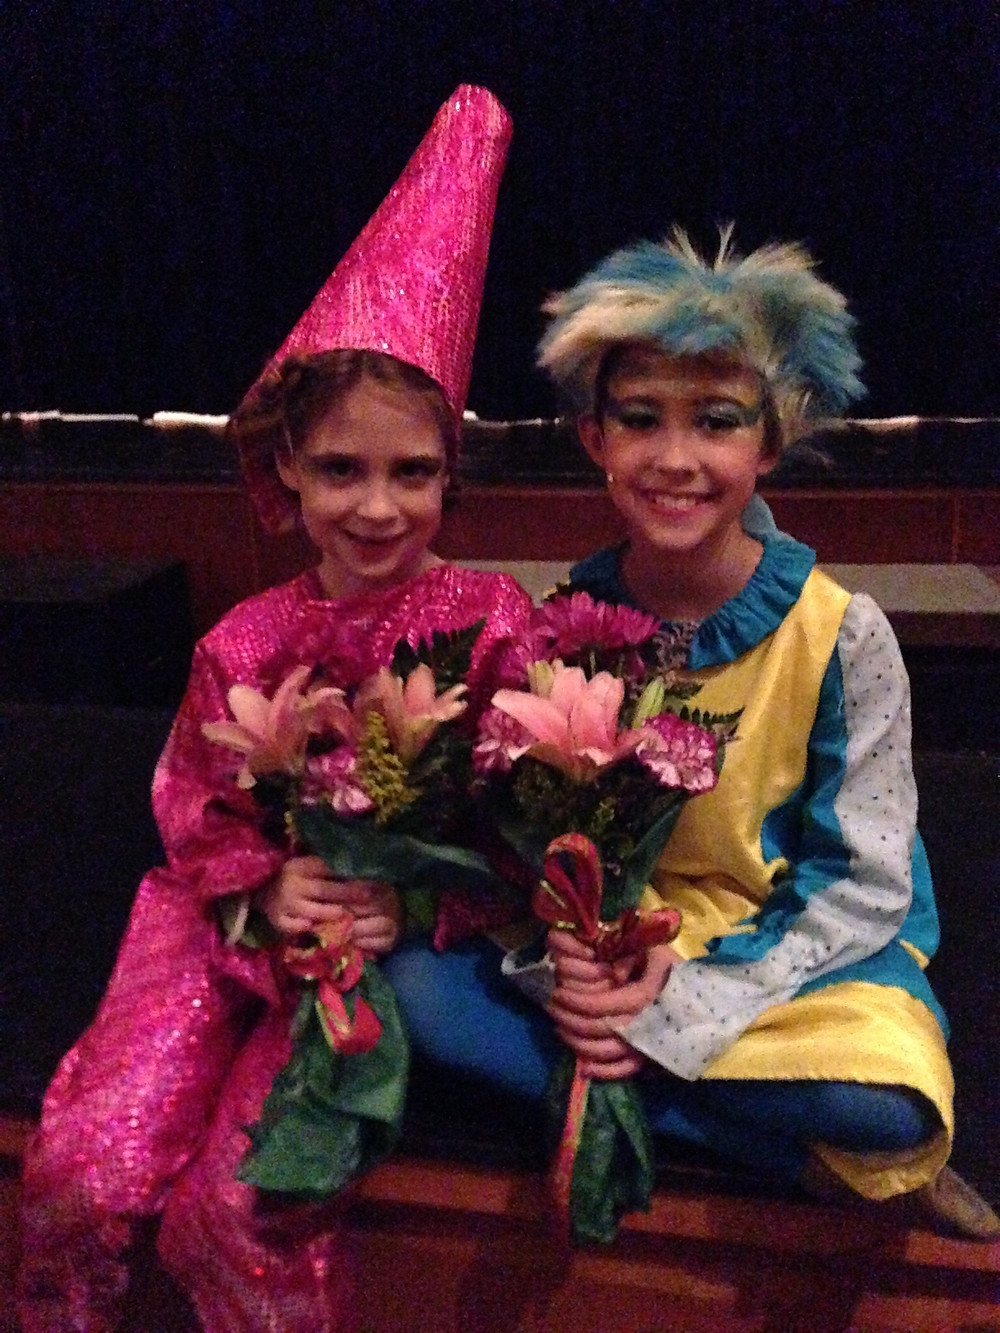 Rennah and her sister Nessa in The Little Mermaid